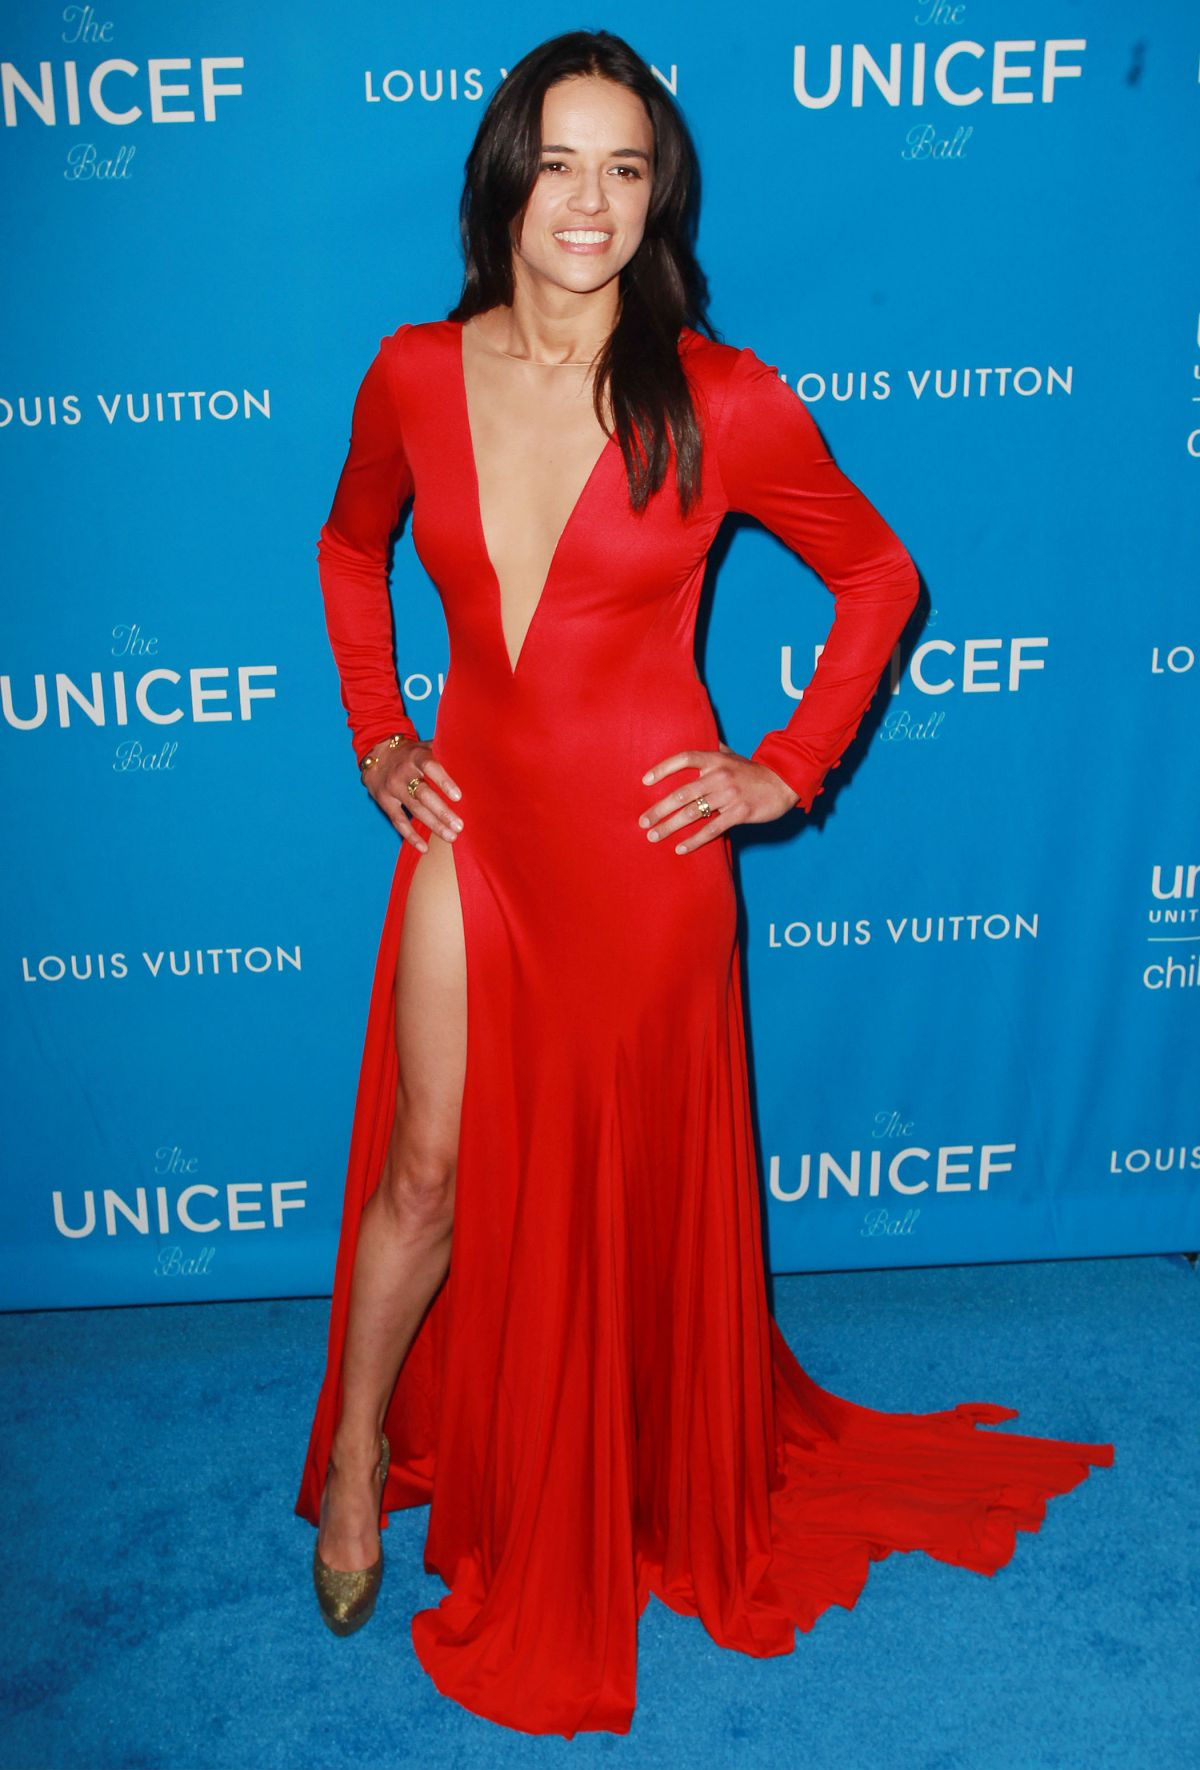 michelle-rodriguez-at-6th-biennial-unicef-ball-in-beverly-hills-01-12-2016_13